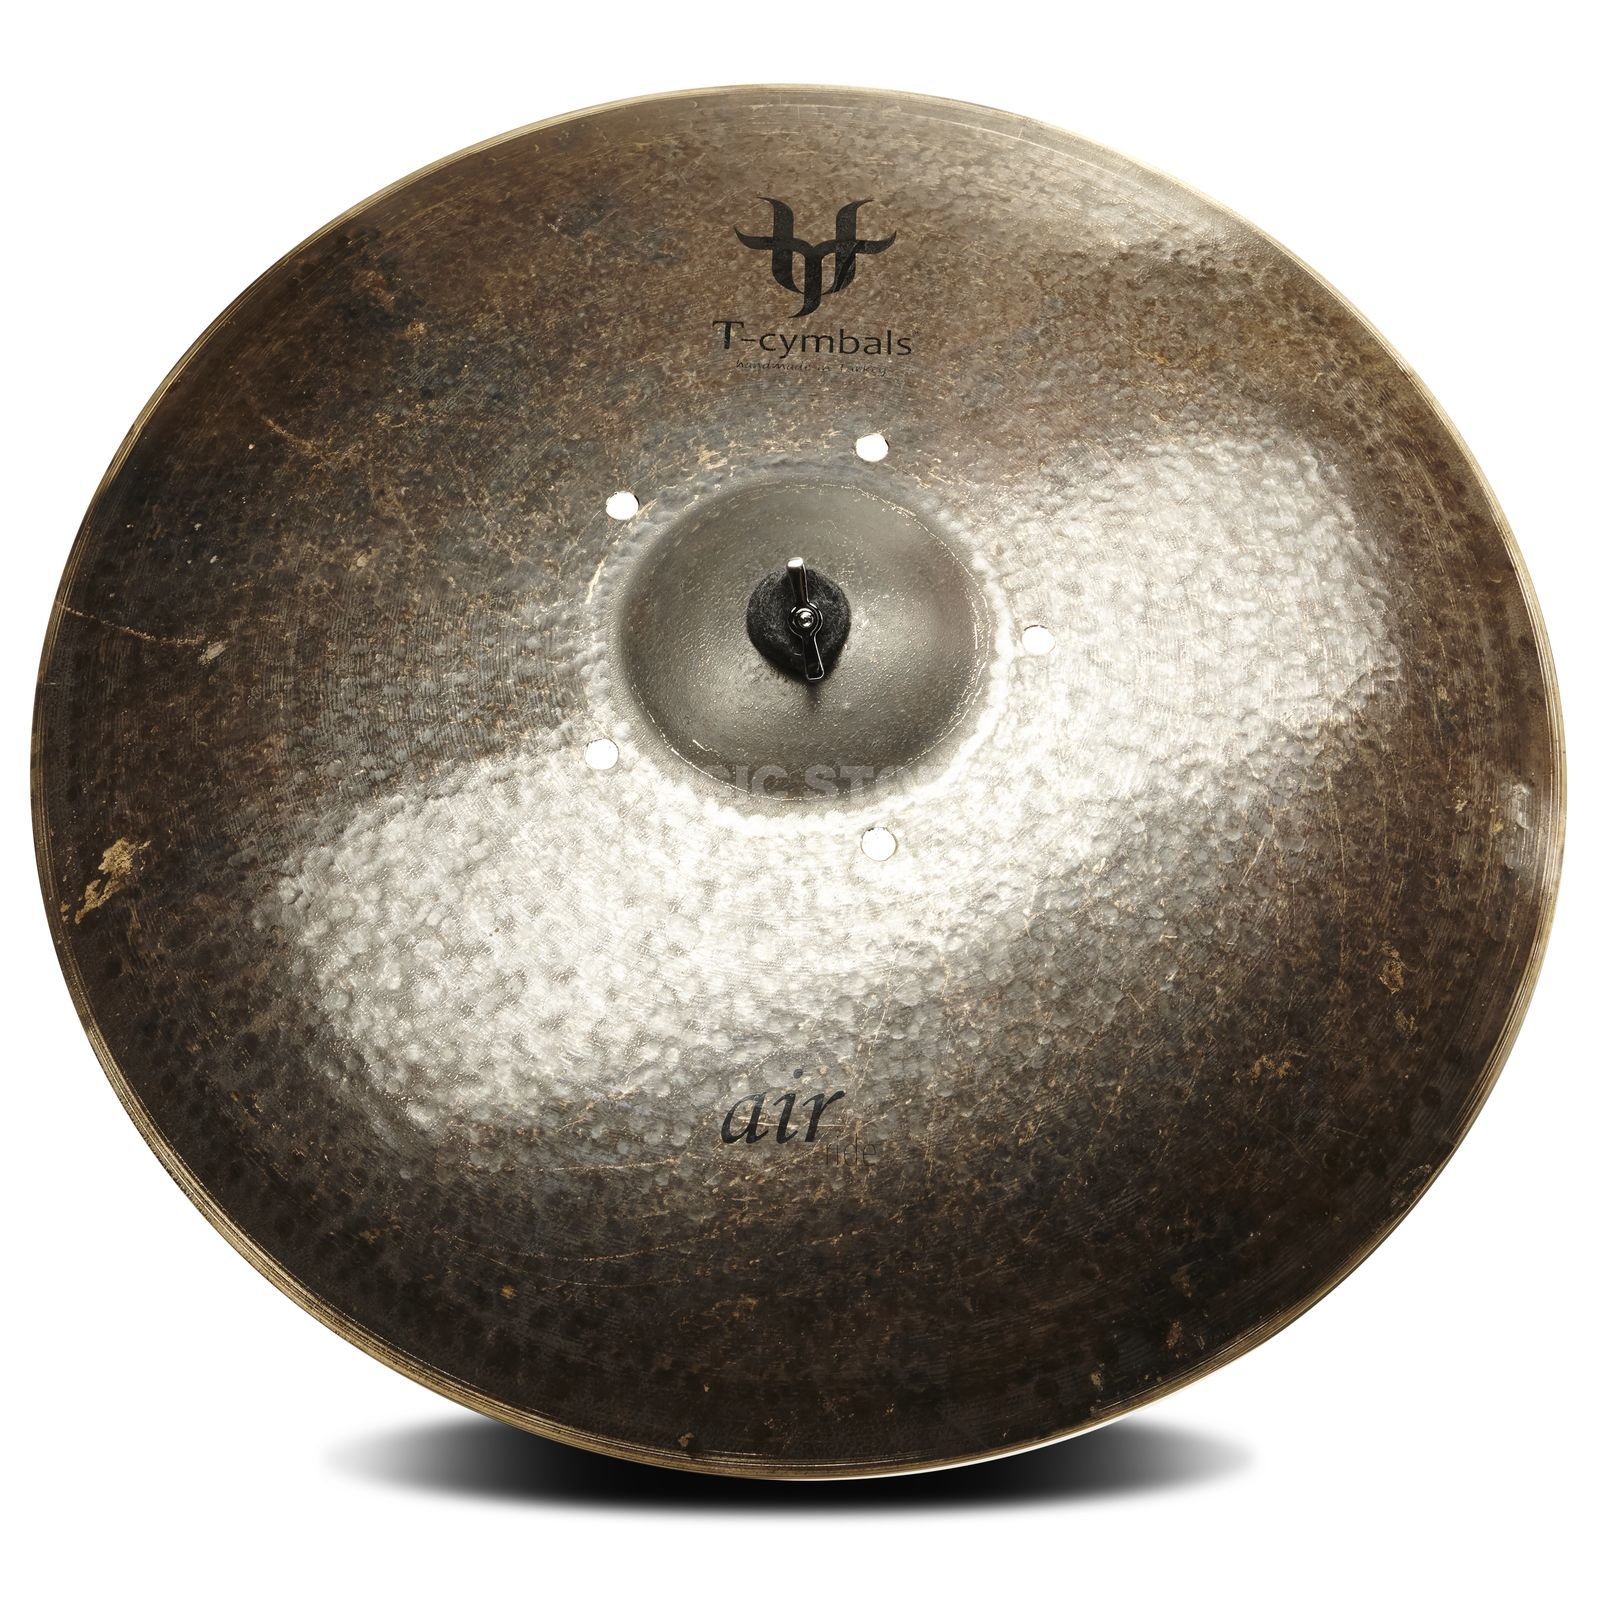 "T-Cymbals Air Ride 23"" Product Image"